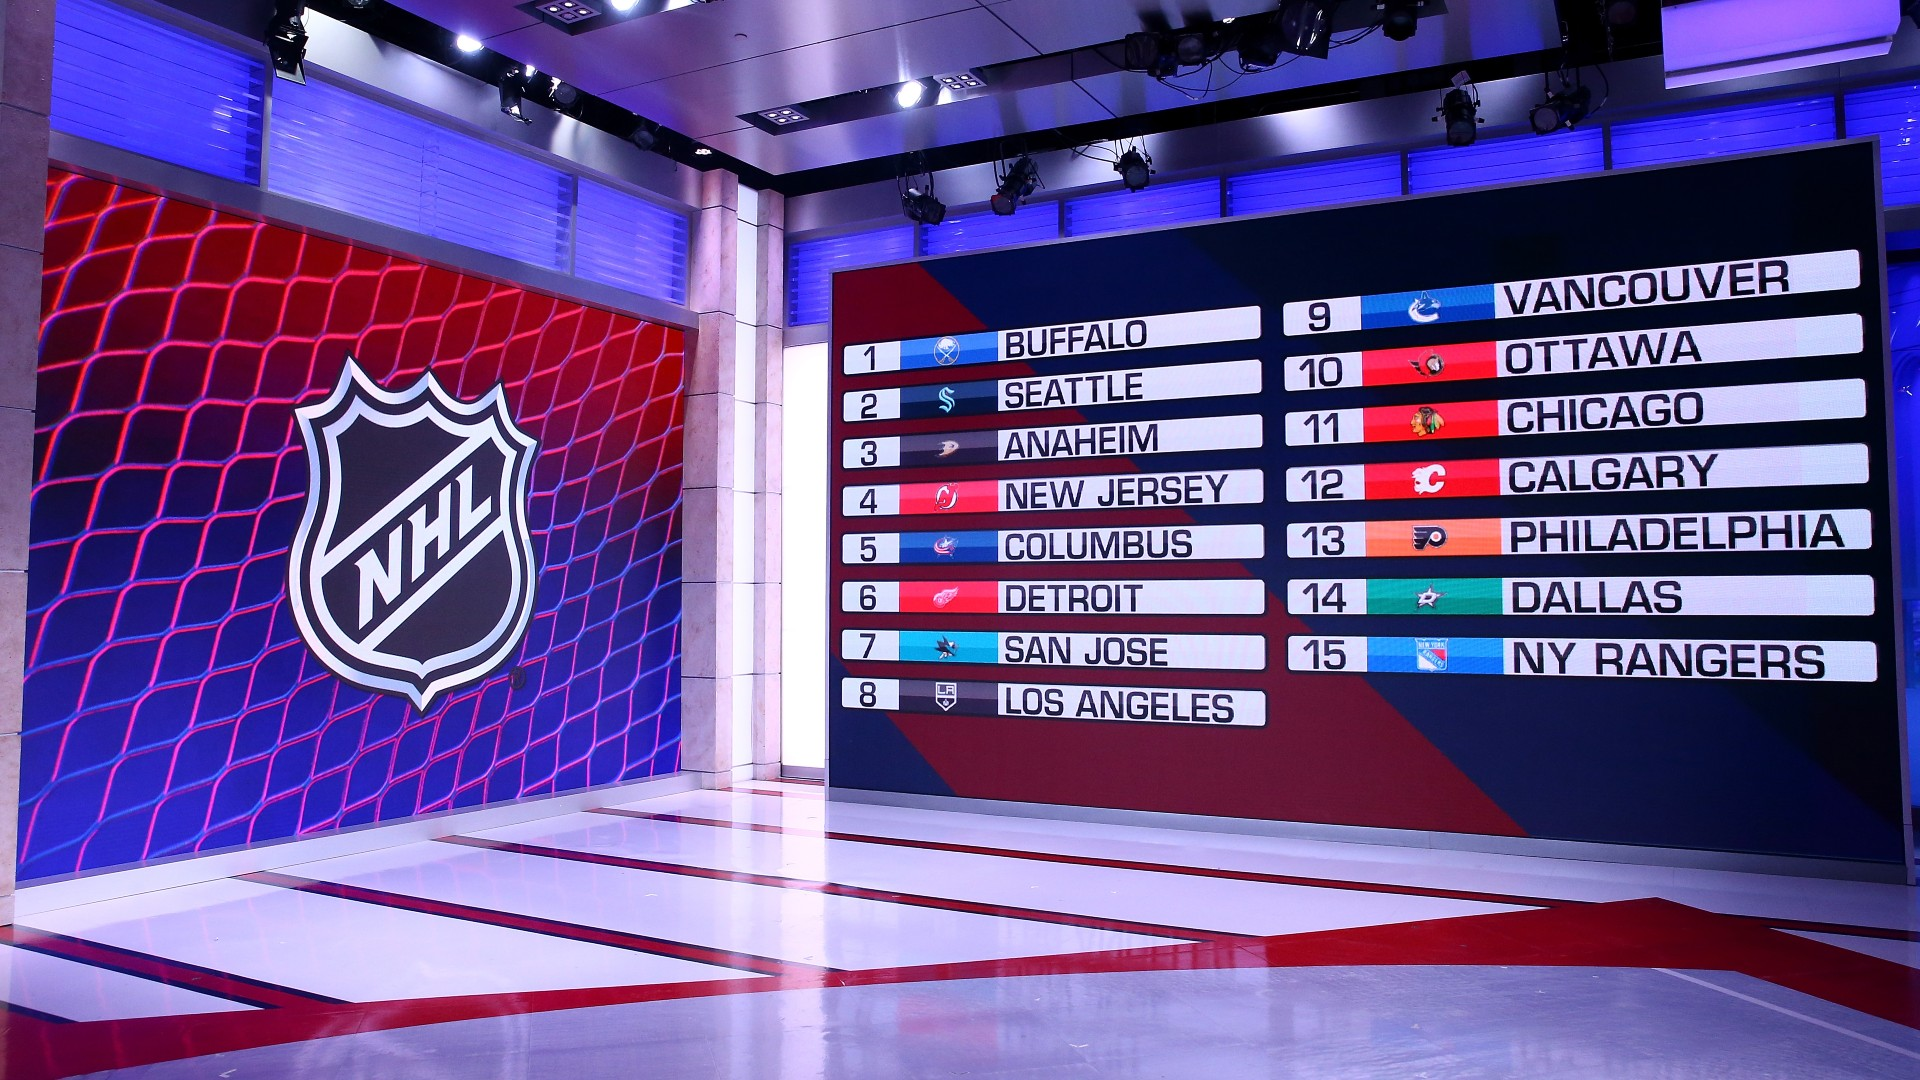 NHL Draft 2021 order by team: Complete list of picks for all 32 franchises - sporting news